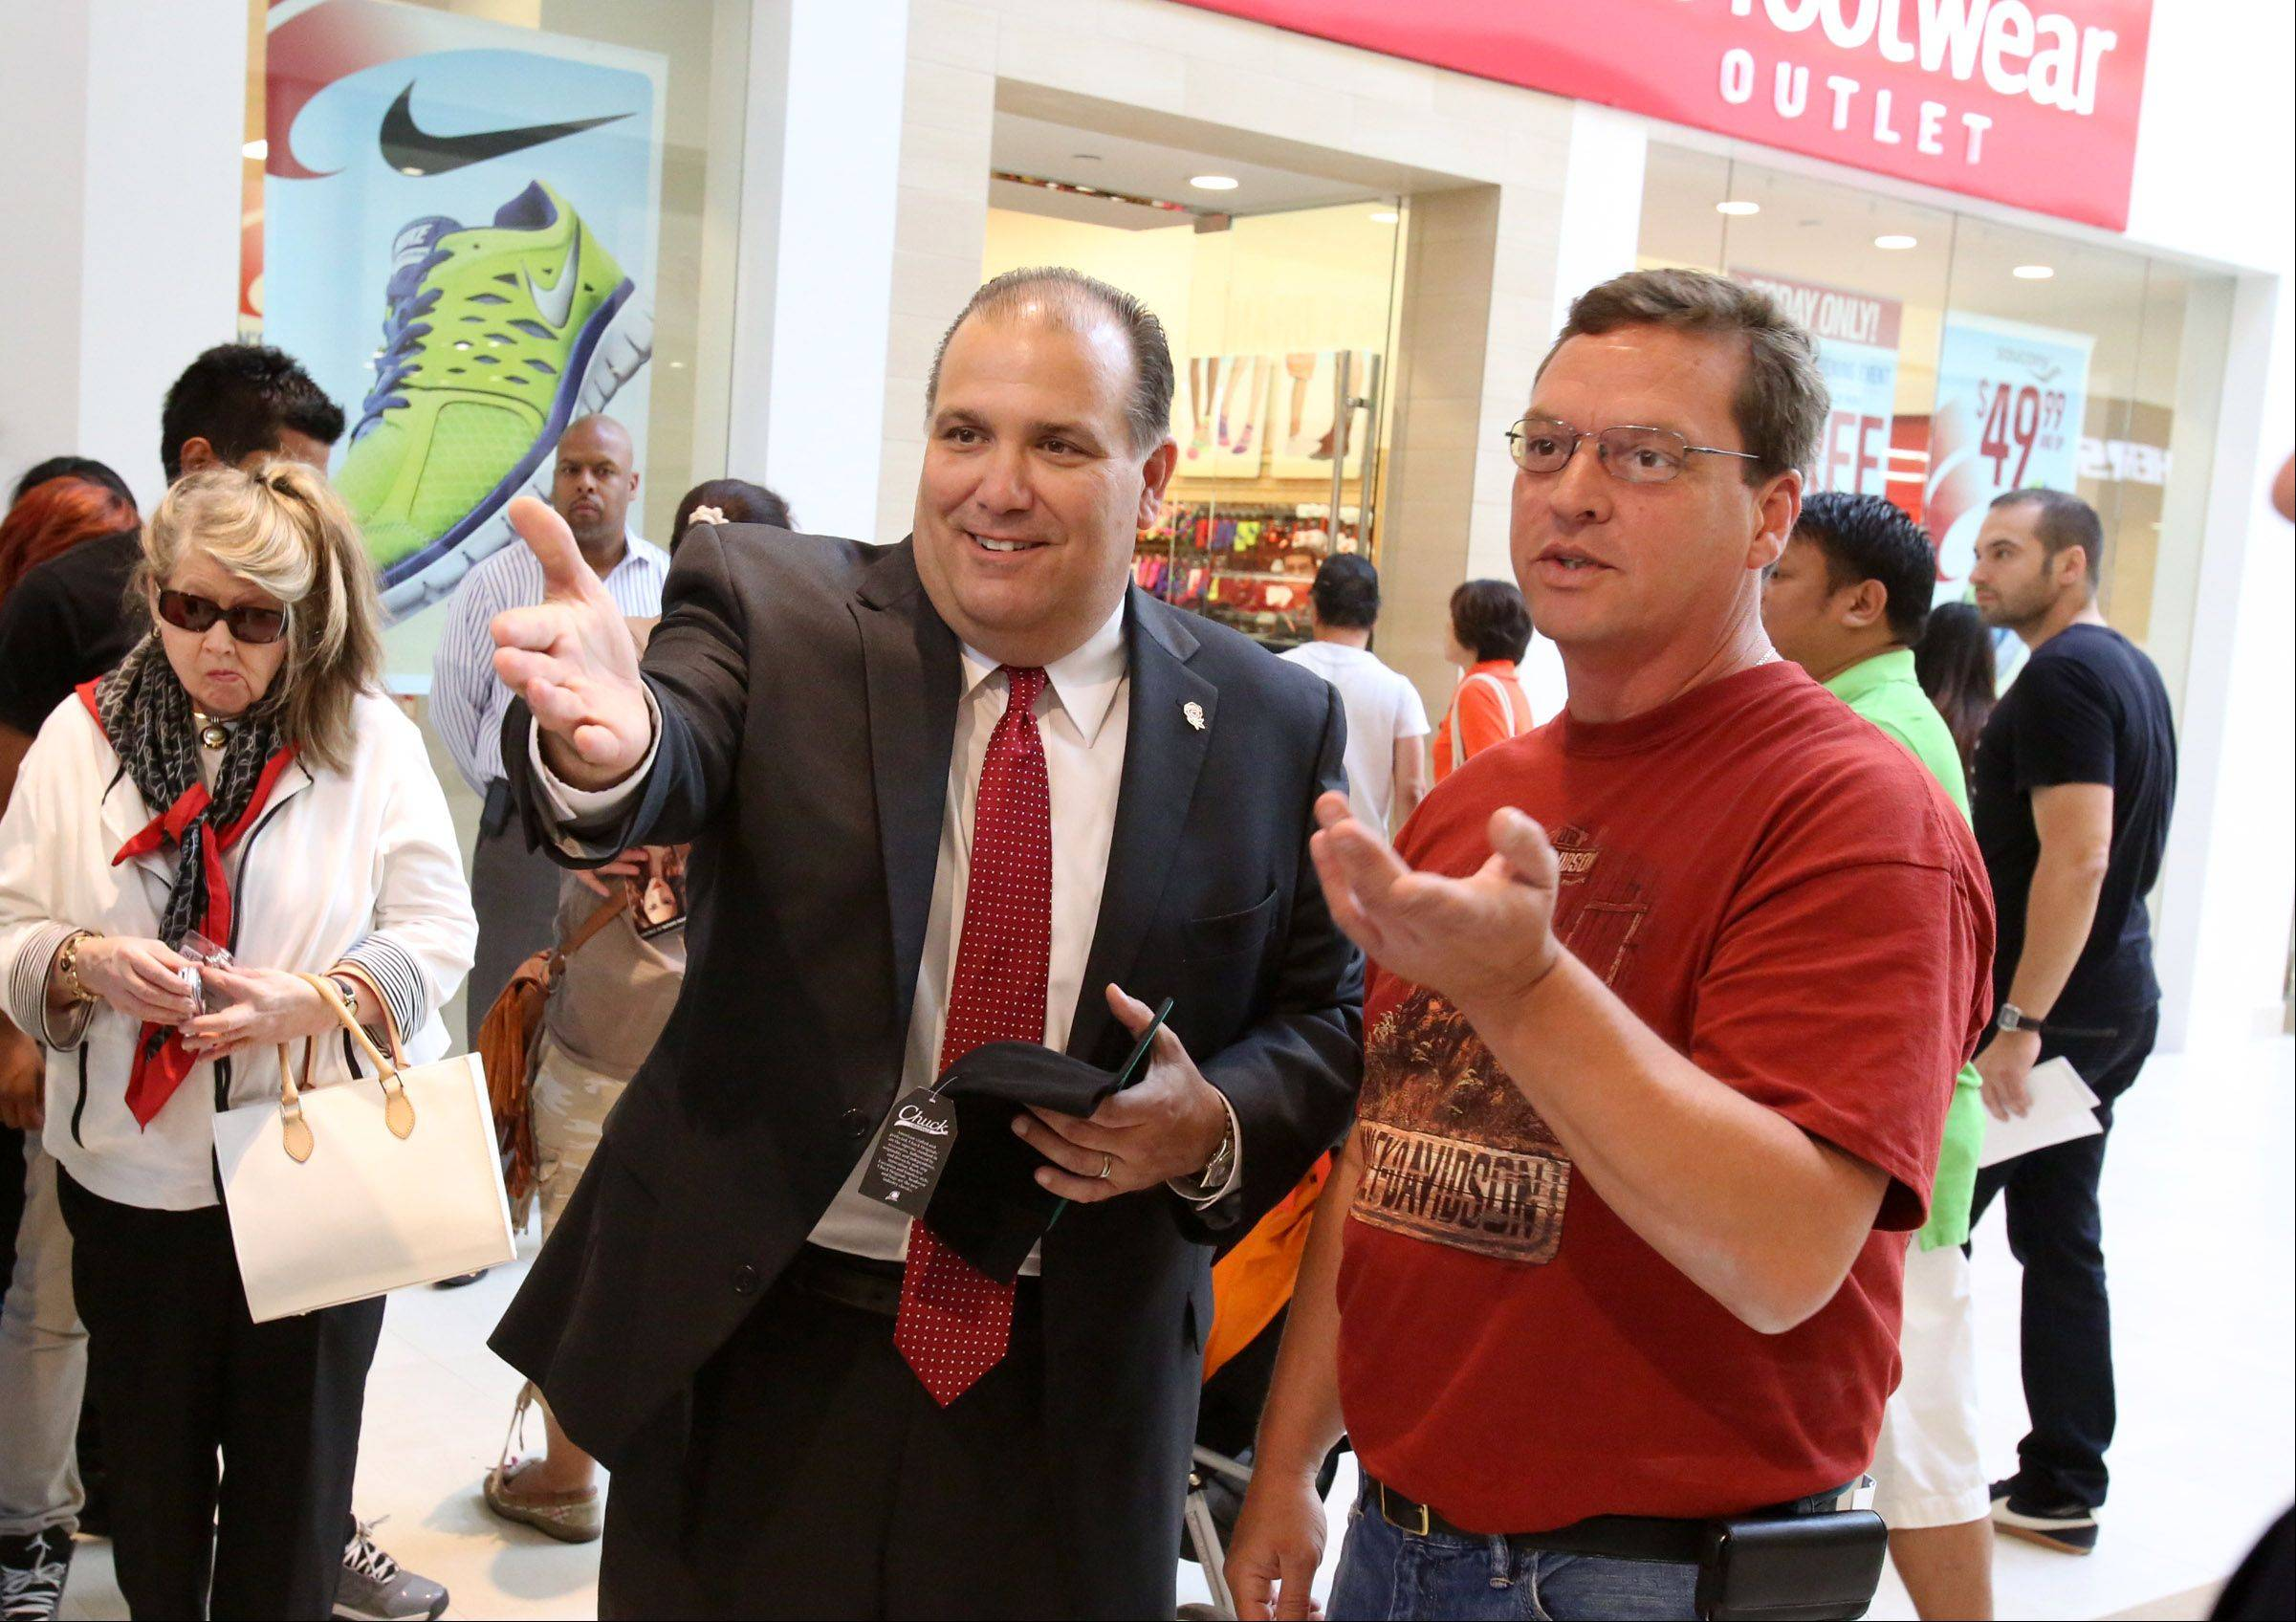 Rosemont Mayor Brad Stephens greets shoppers at the Fashion Outlets of Chicago on Thursday after the ribbon-cutting ceremony.